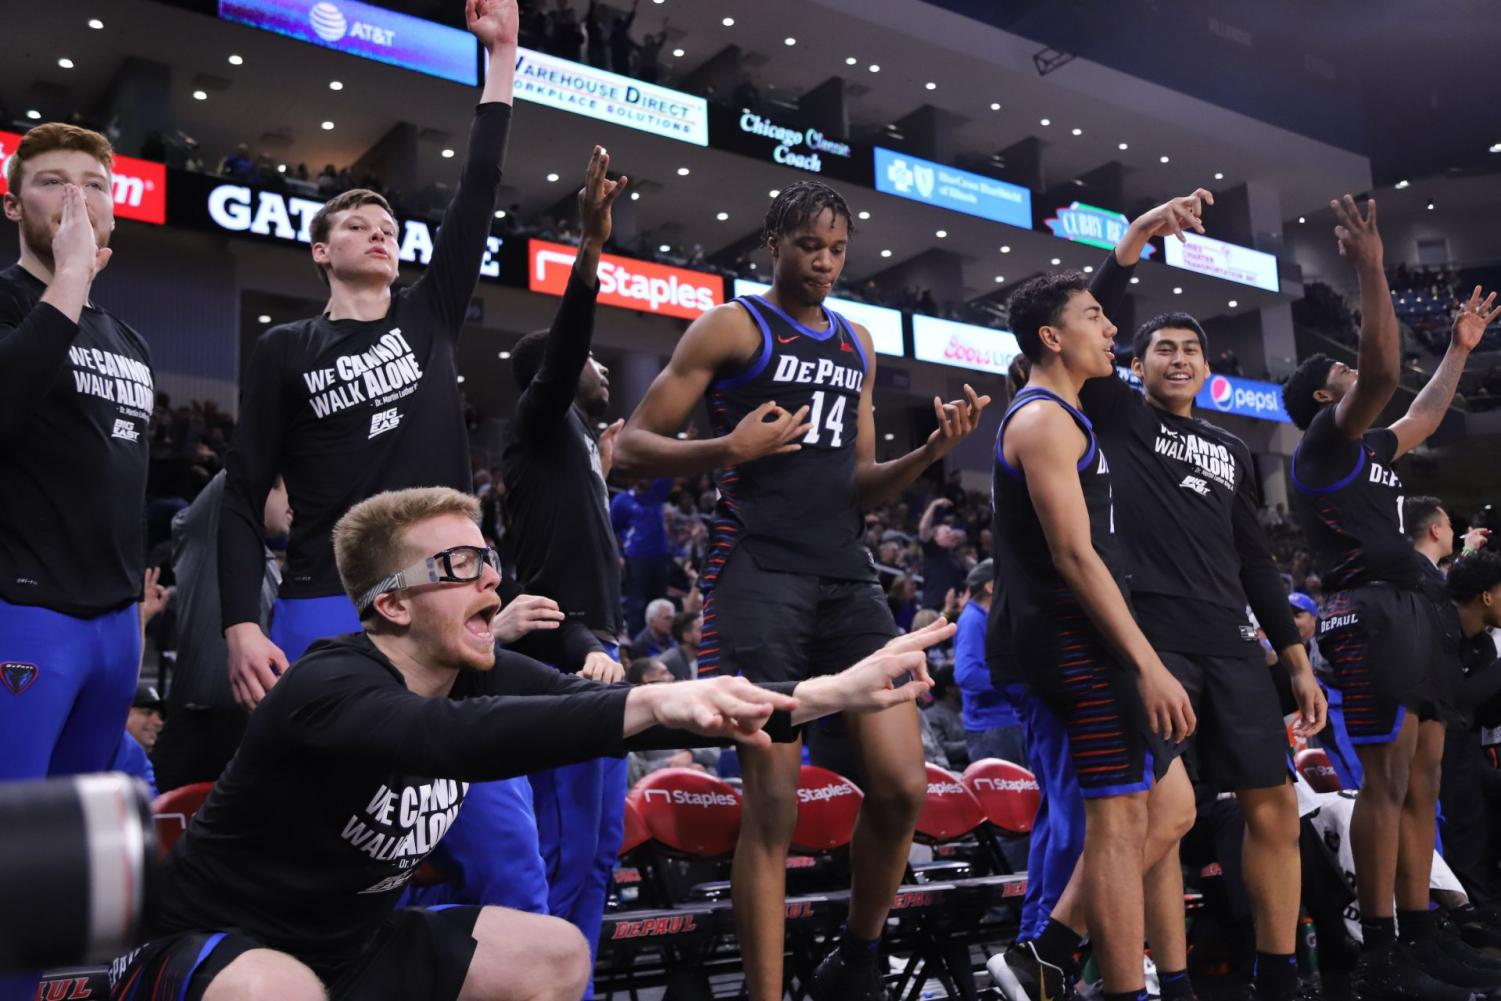 Pantelis Xidias (bottom left) and DePaul's bench celebrates a three-point shot as the Blue Demons continued to pile up points in the second half Saturday.